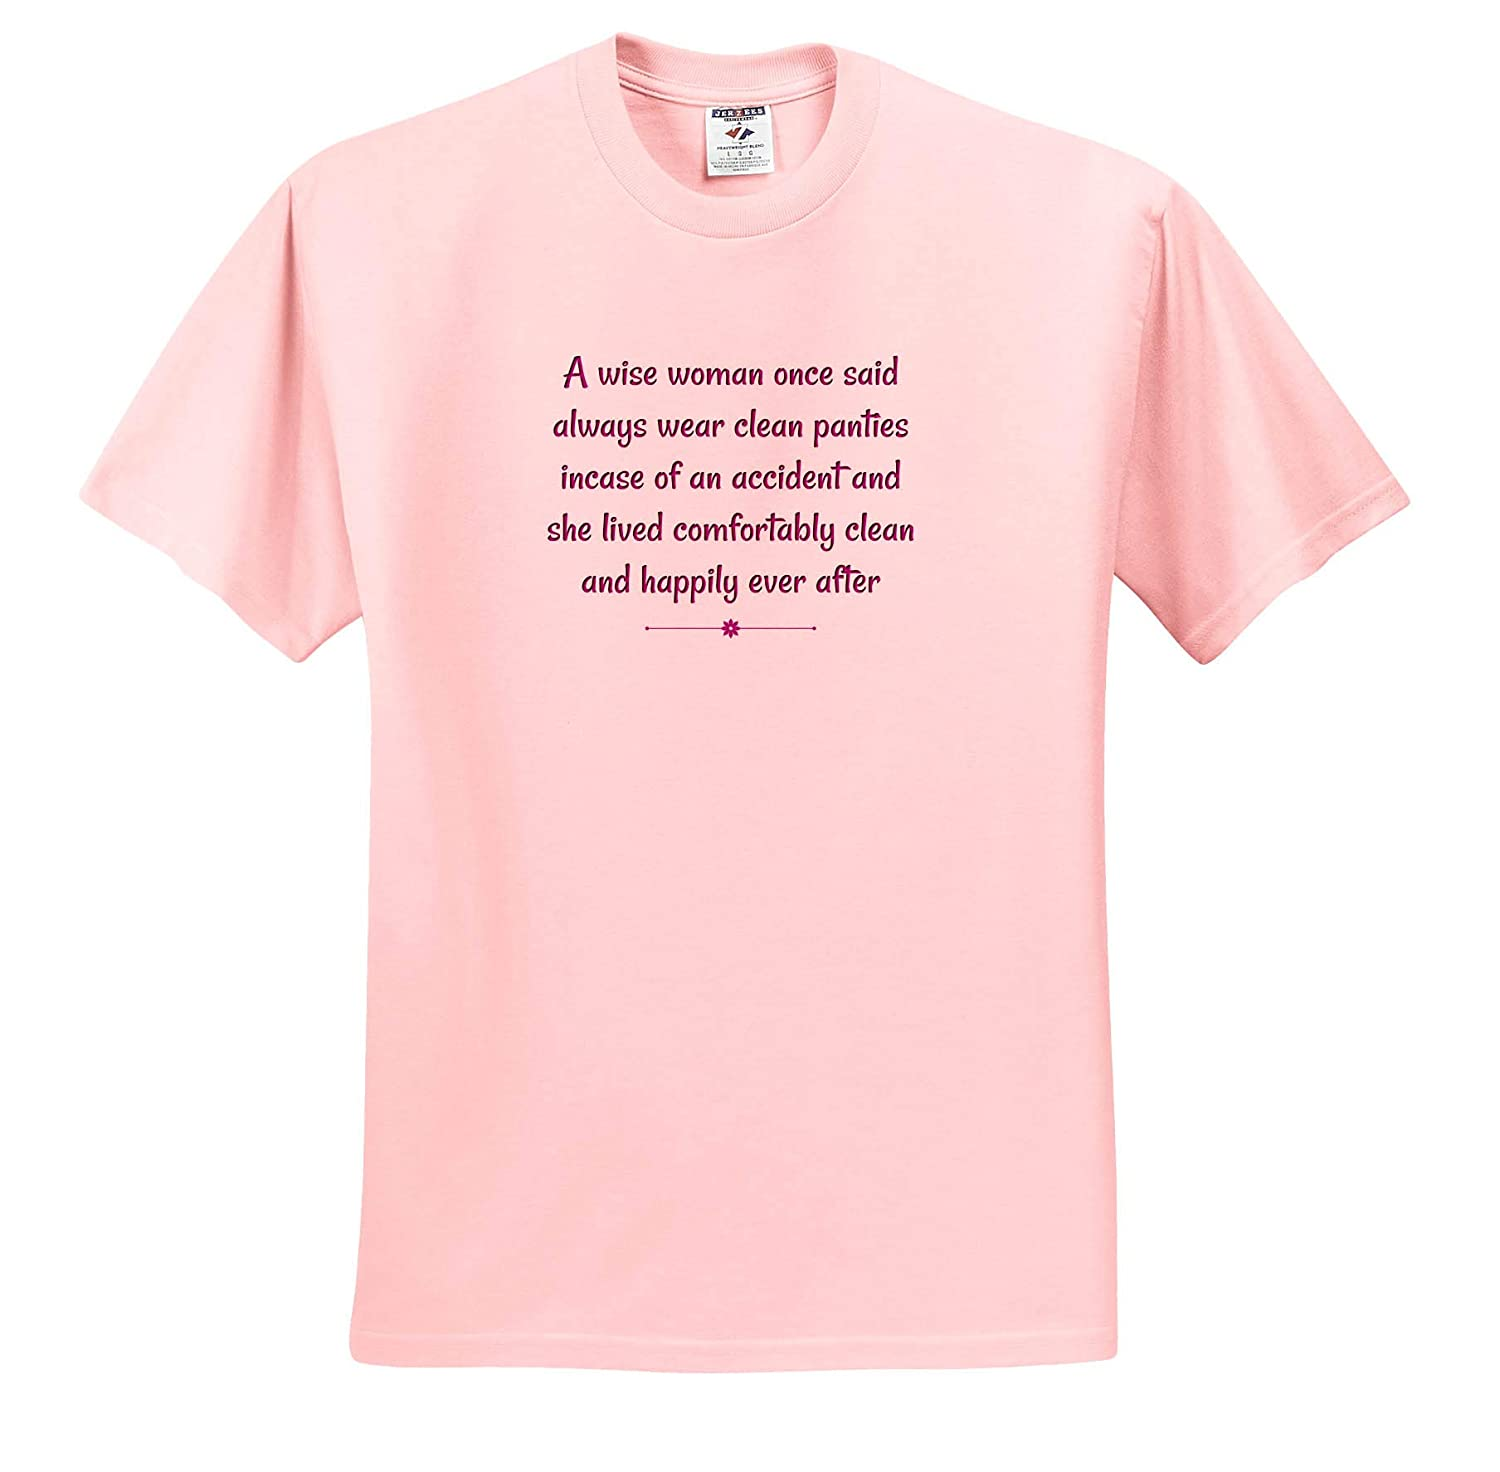 3dRose Carrie Merchant Quote Image of A Wise Woman Said Wear Clean Panties T-Shirts